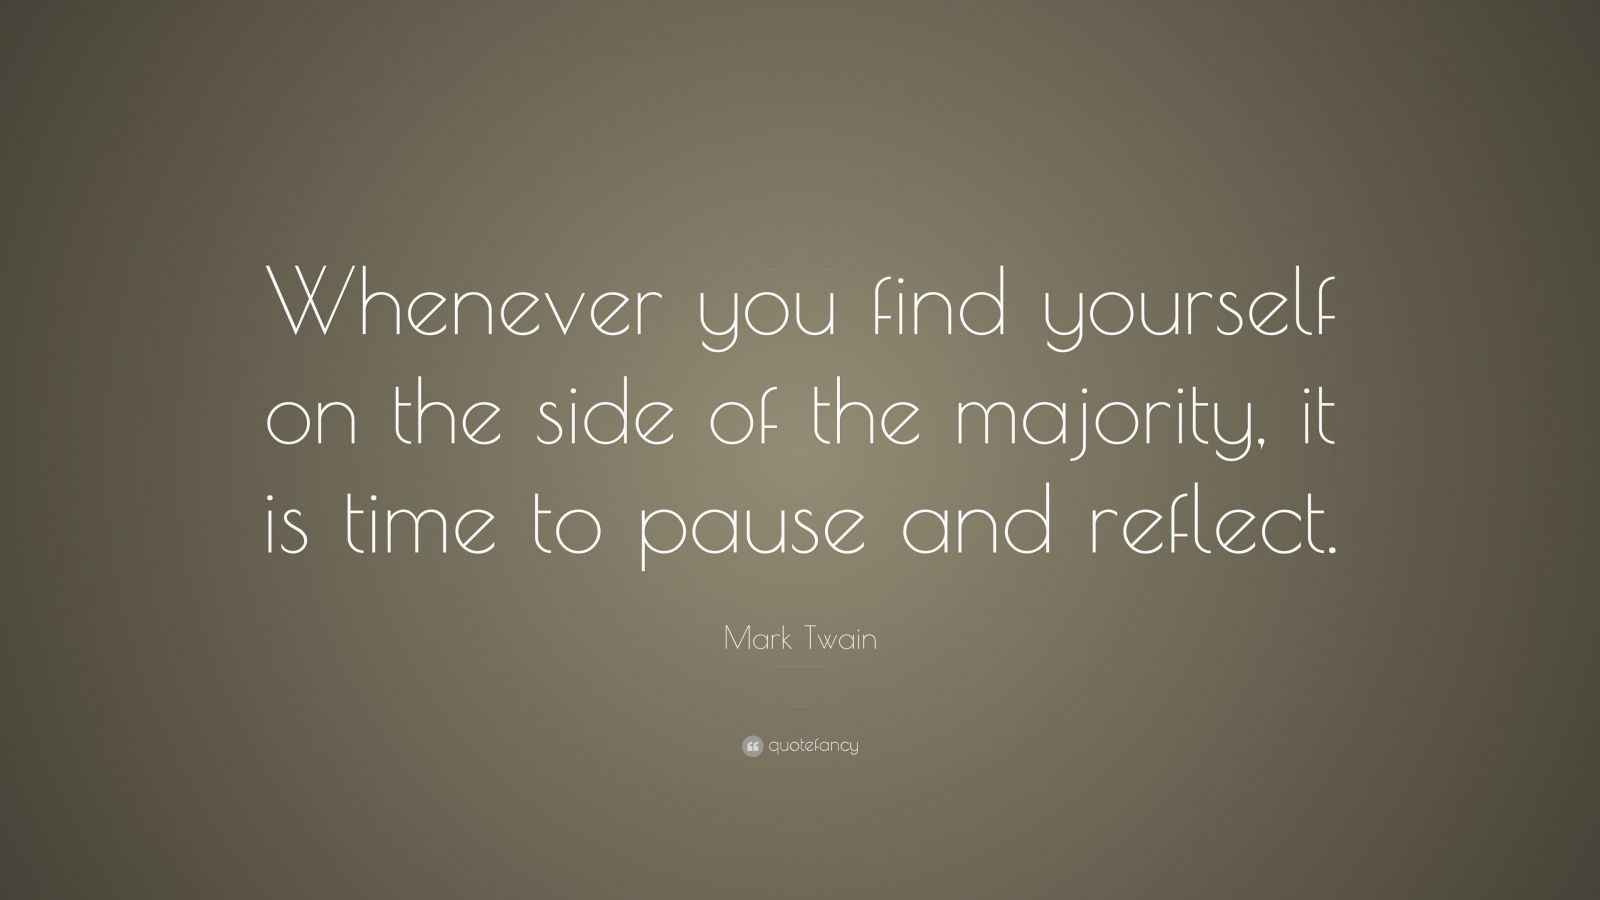 Time Is It to the Side of the Pause and Reflect On Yourself You Find Mark Twain Majority Whenever